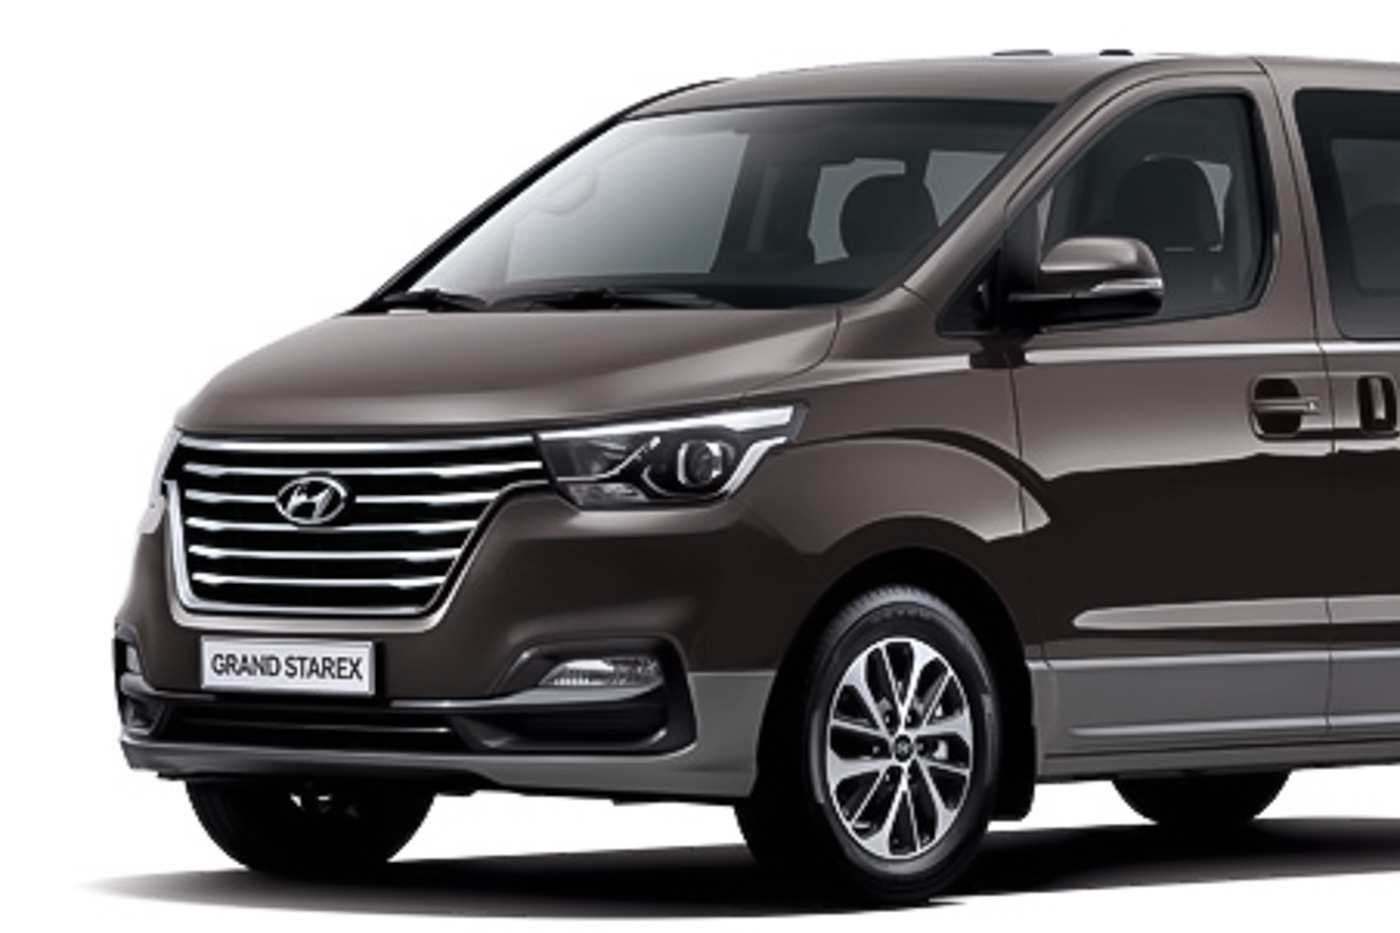 81 New Hyundai Starex 2020 Redesign and Concept by Hyundai Starex 2020